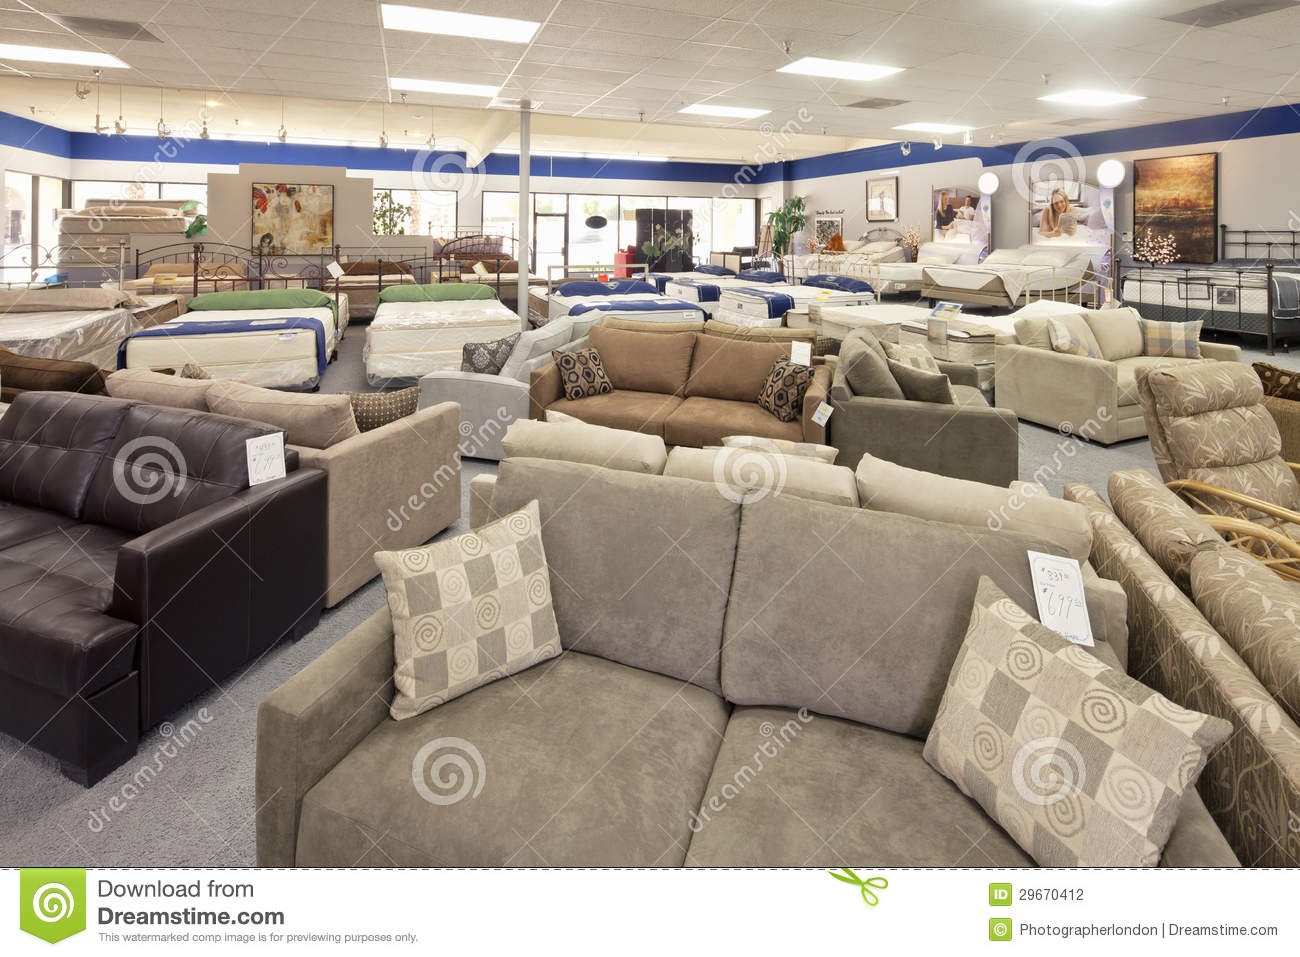 furniture displayed in a clothes shop close up low angle royalty free stock photo. Black Bedroom Furniture Sets. Home Design Ideas